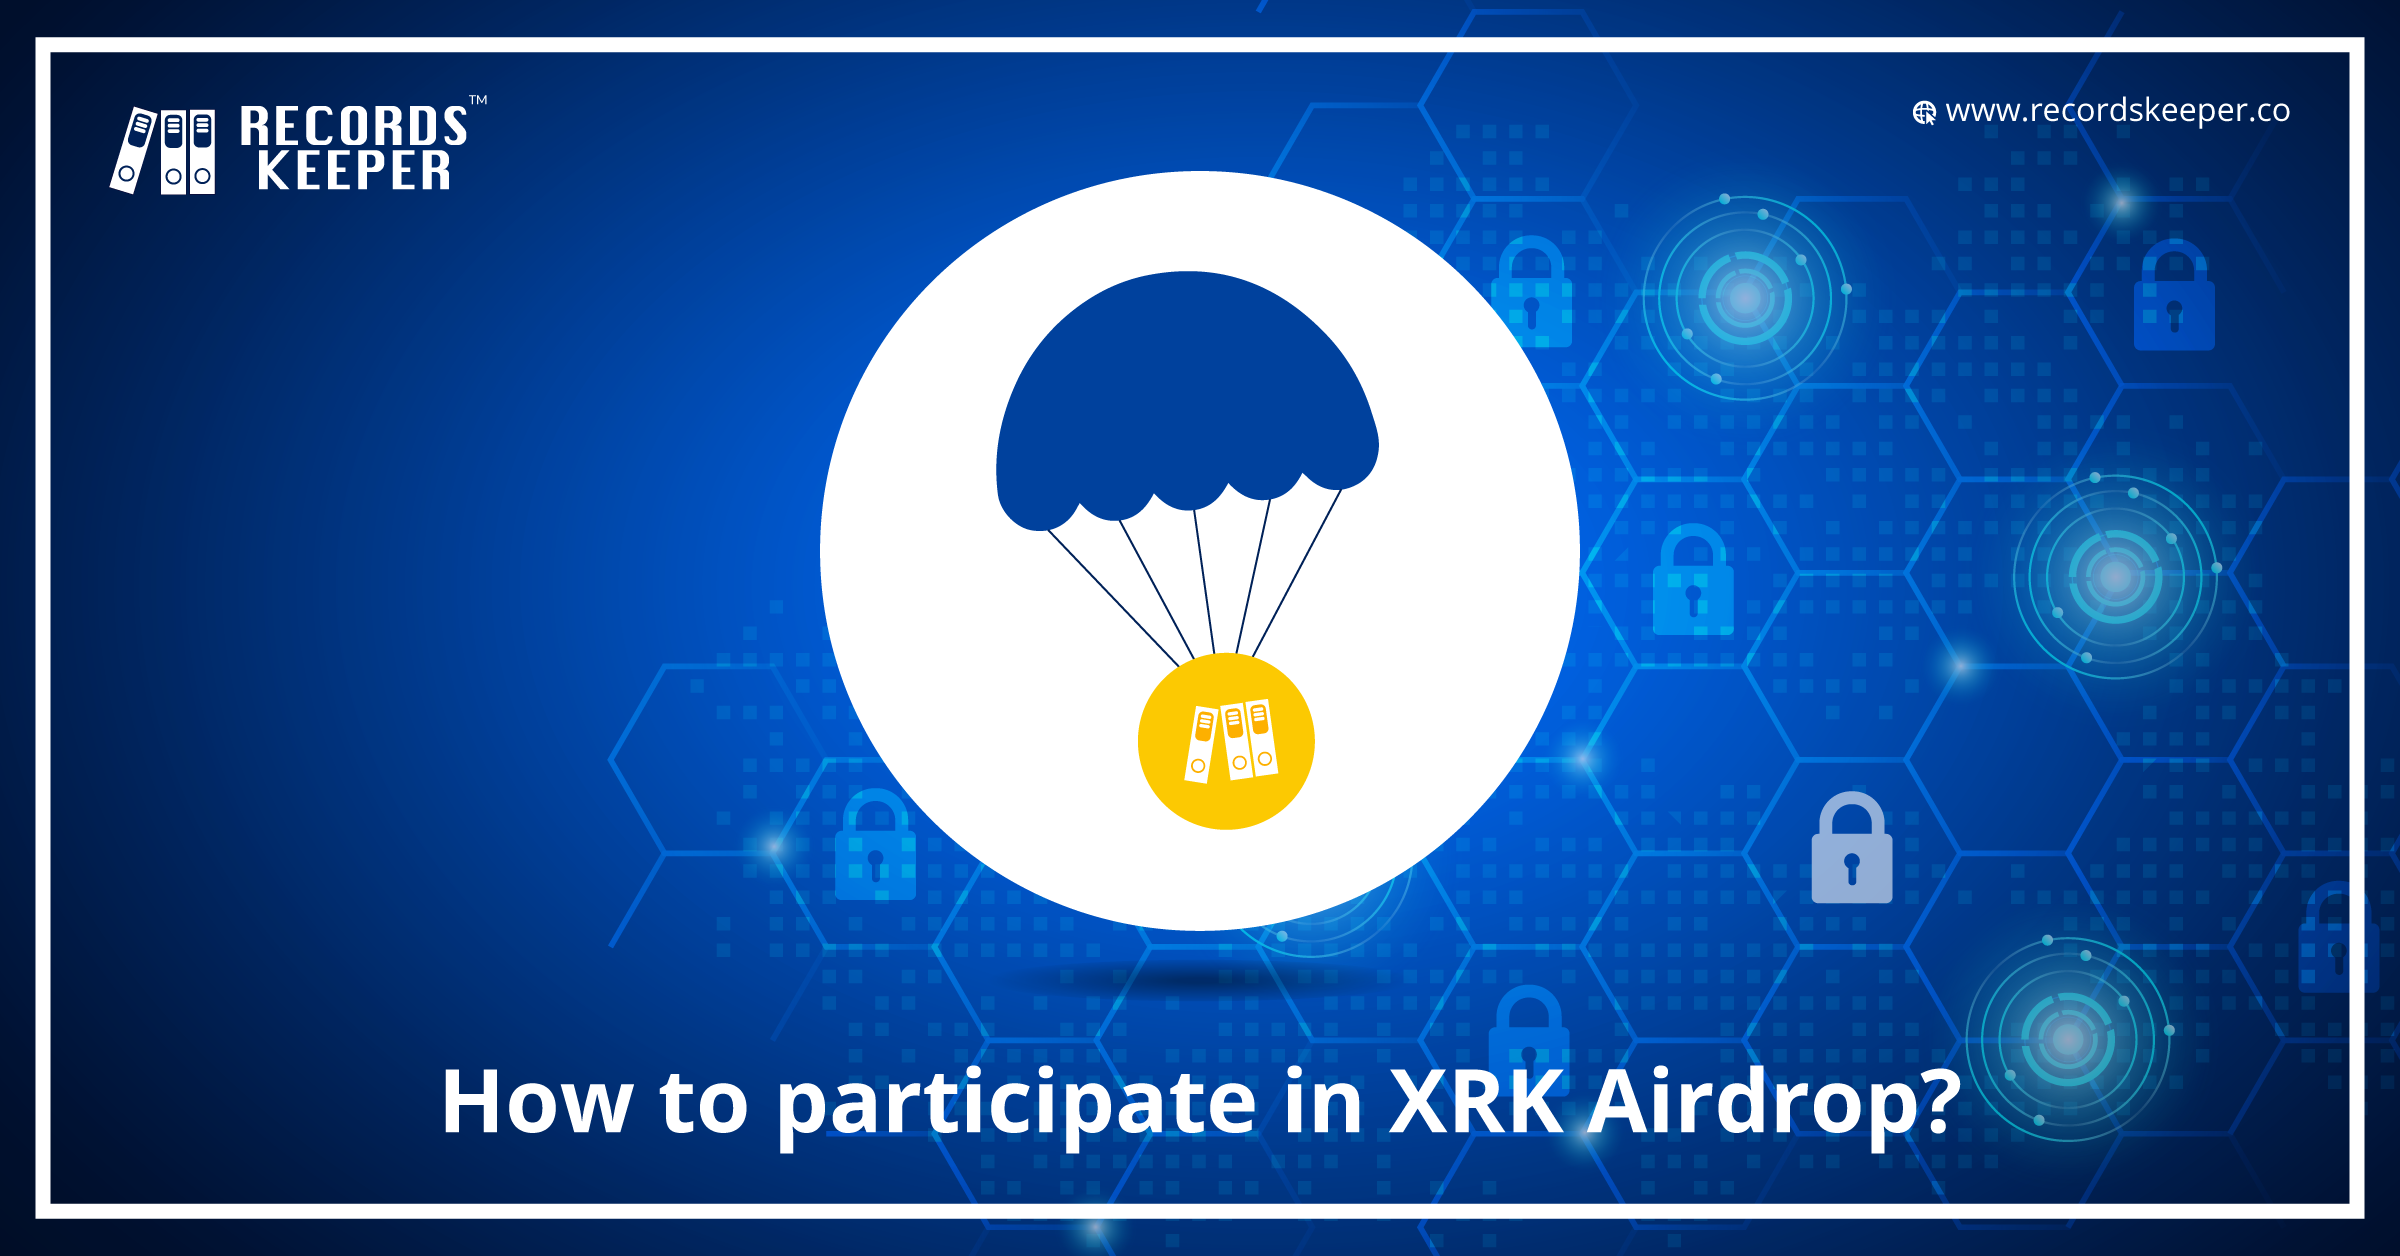 How to participate in XRK Airdrop?